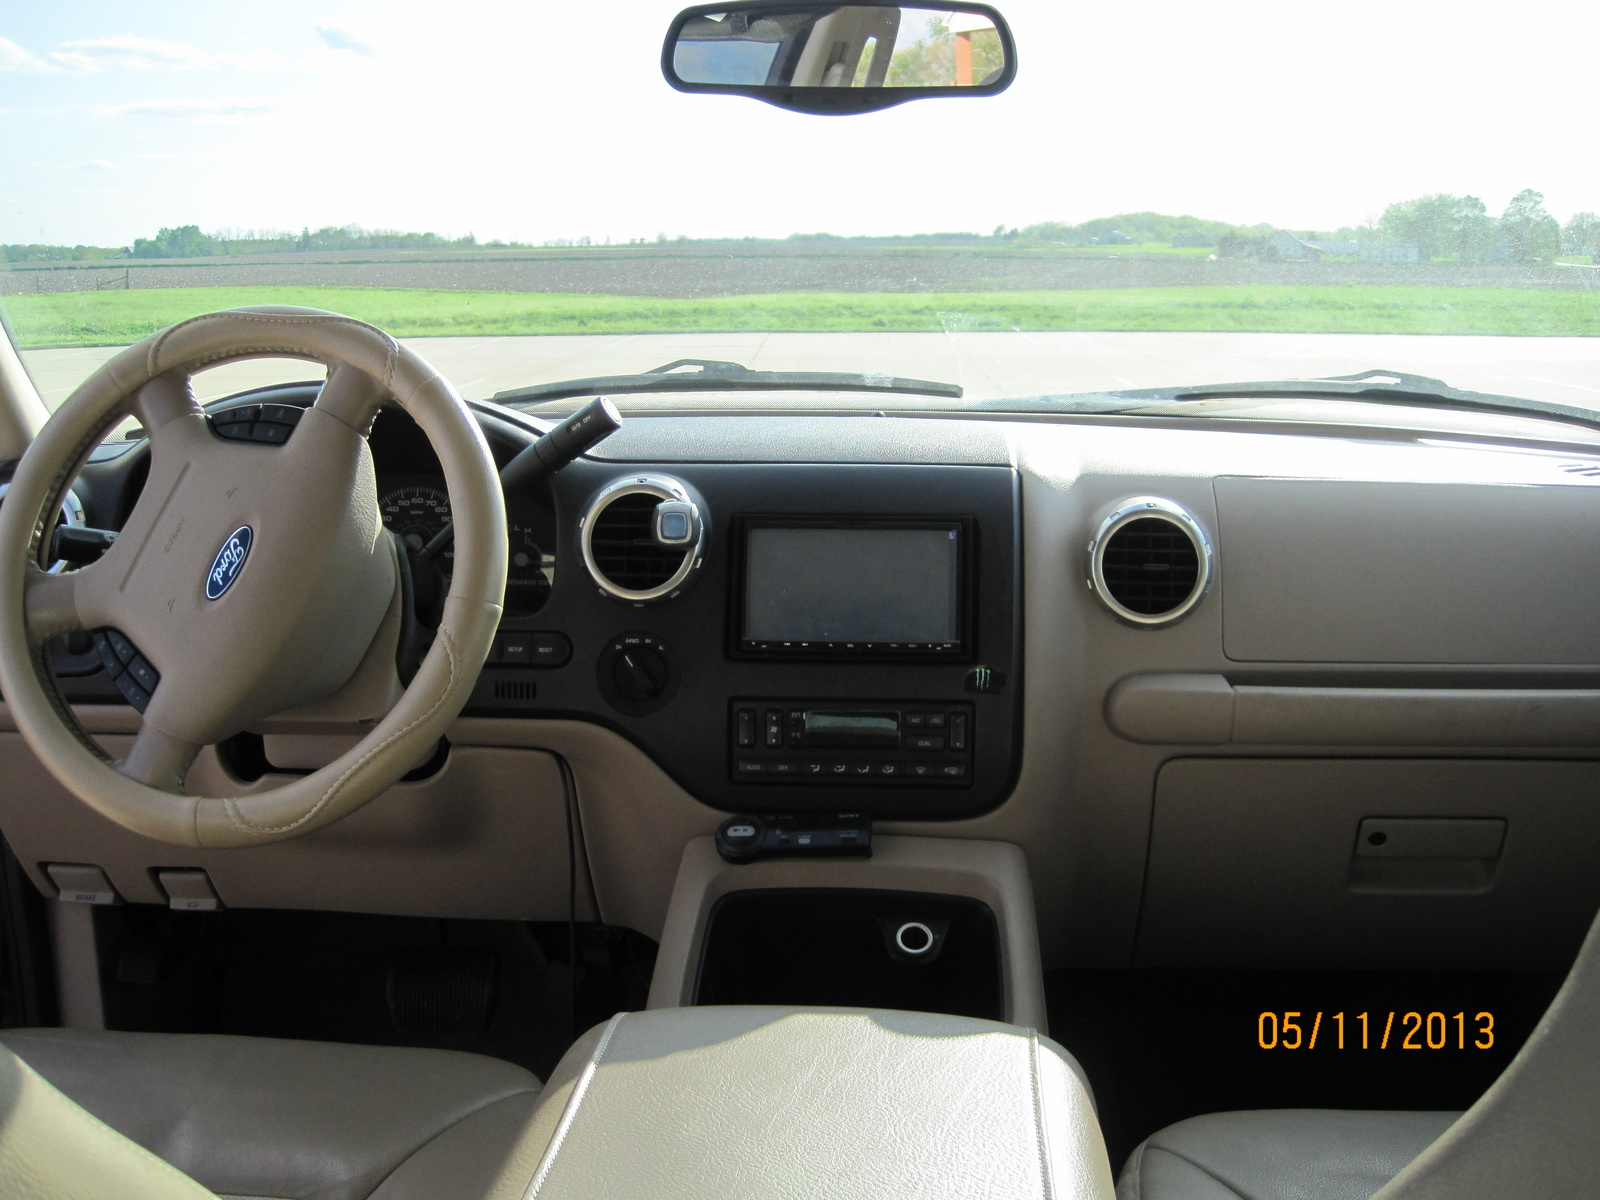 2004 ford expedition image 7